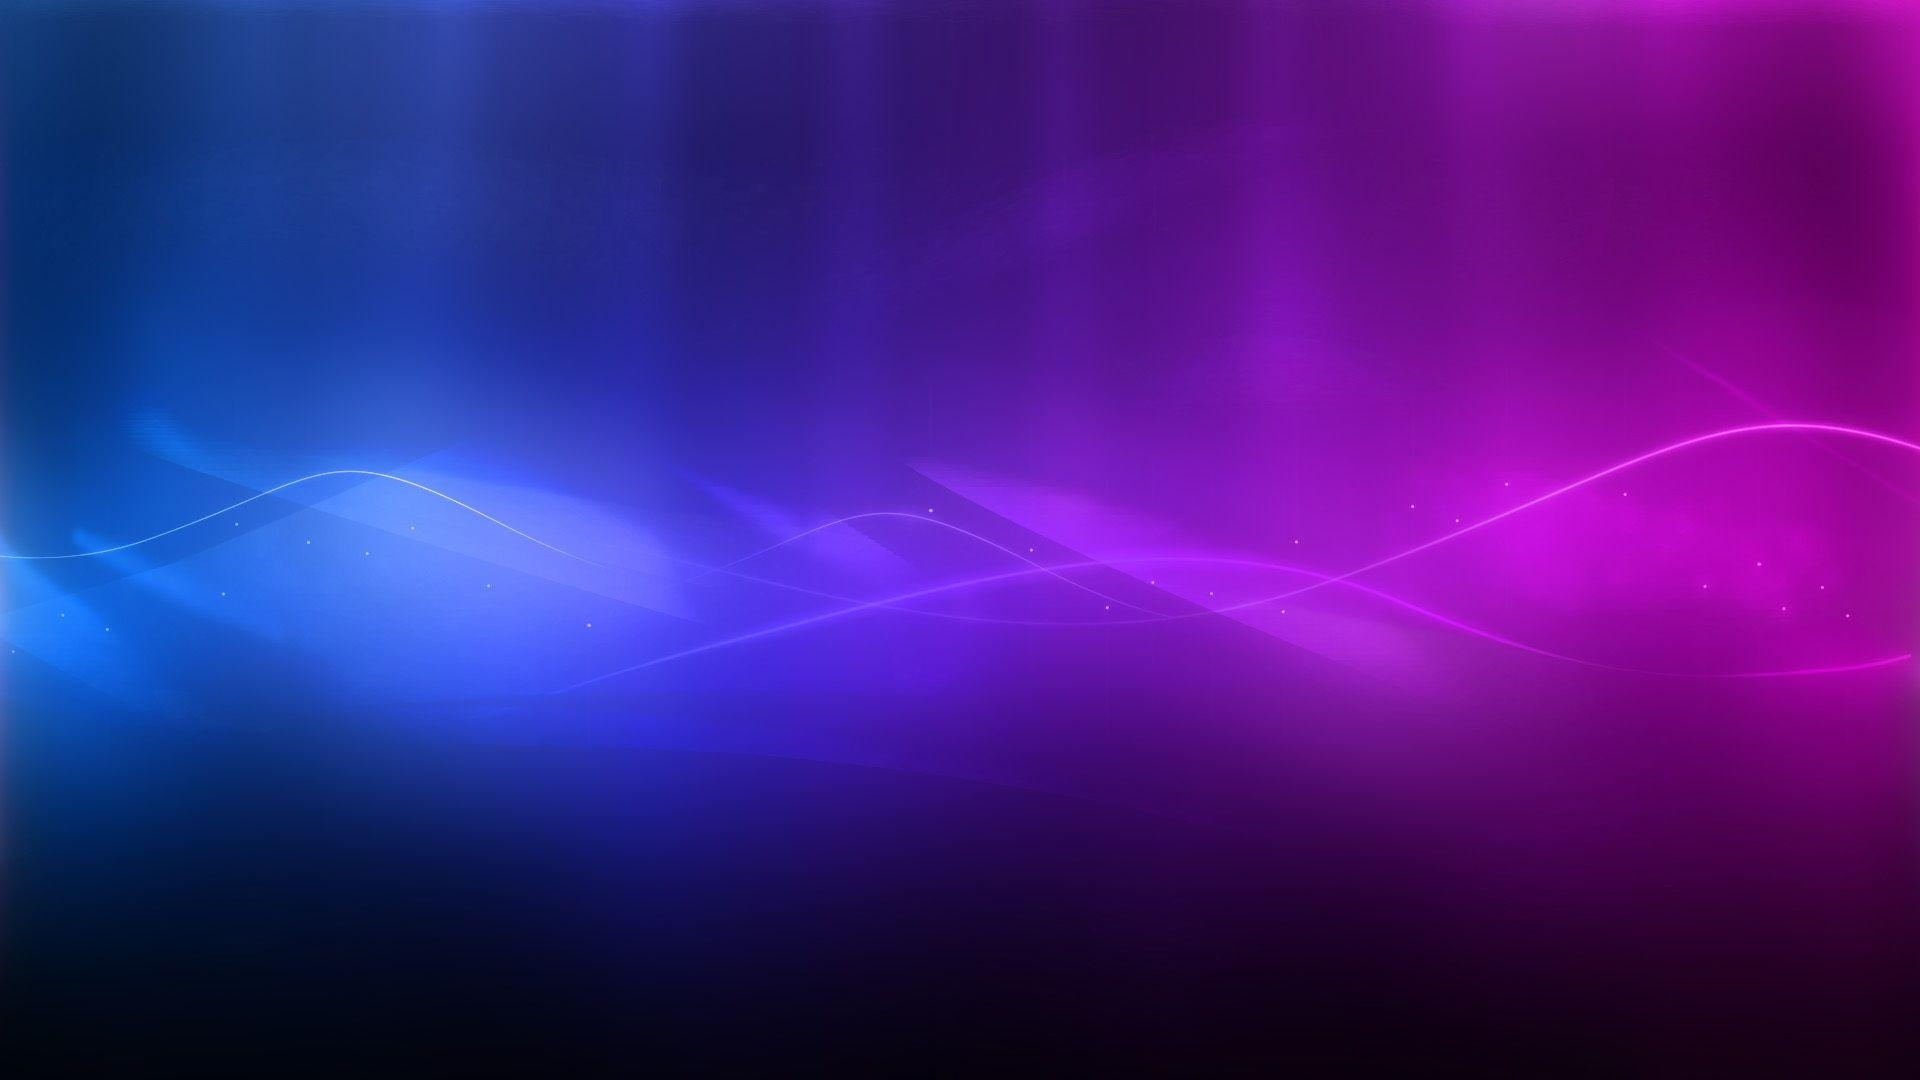 10 Latest Purple And Blue Wallpaper FULL HD 1920×1080 For PC Desktop